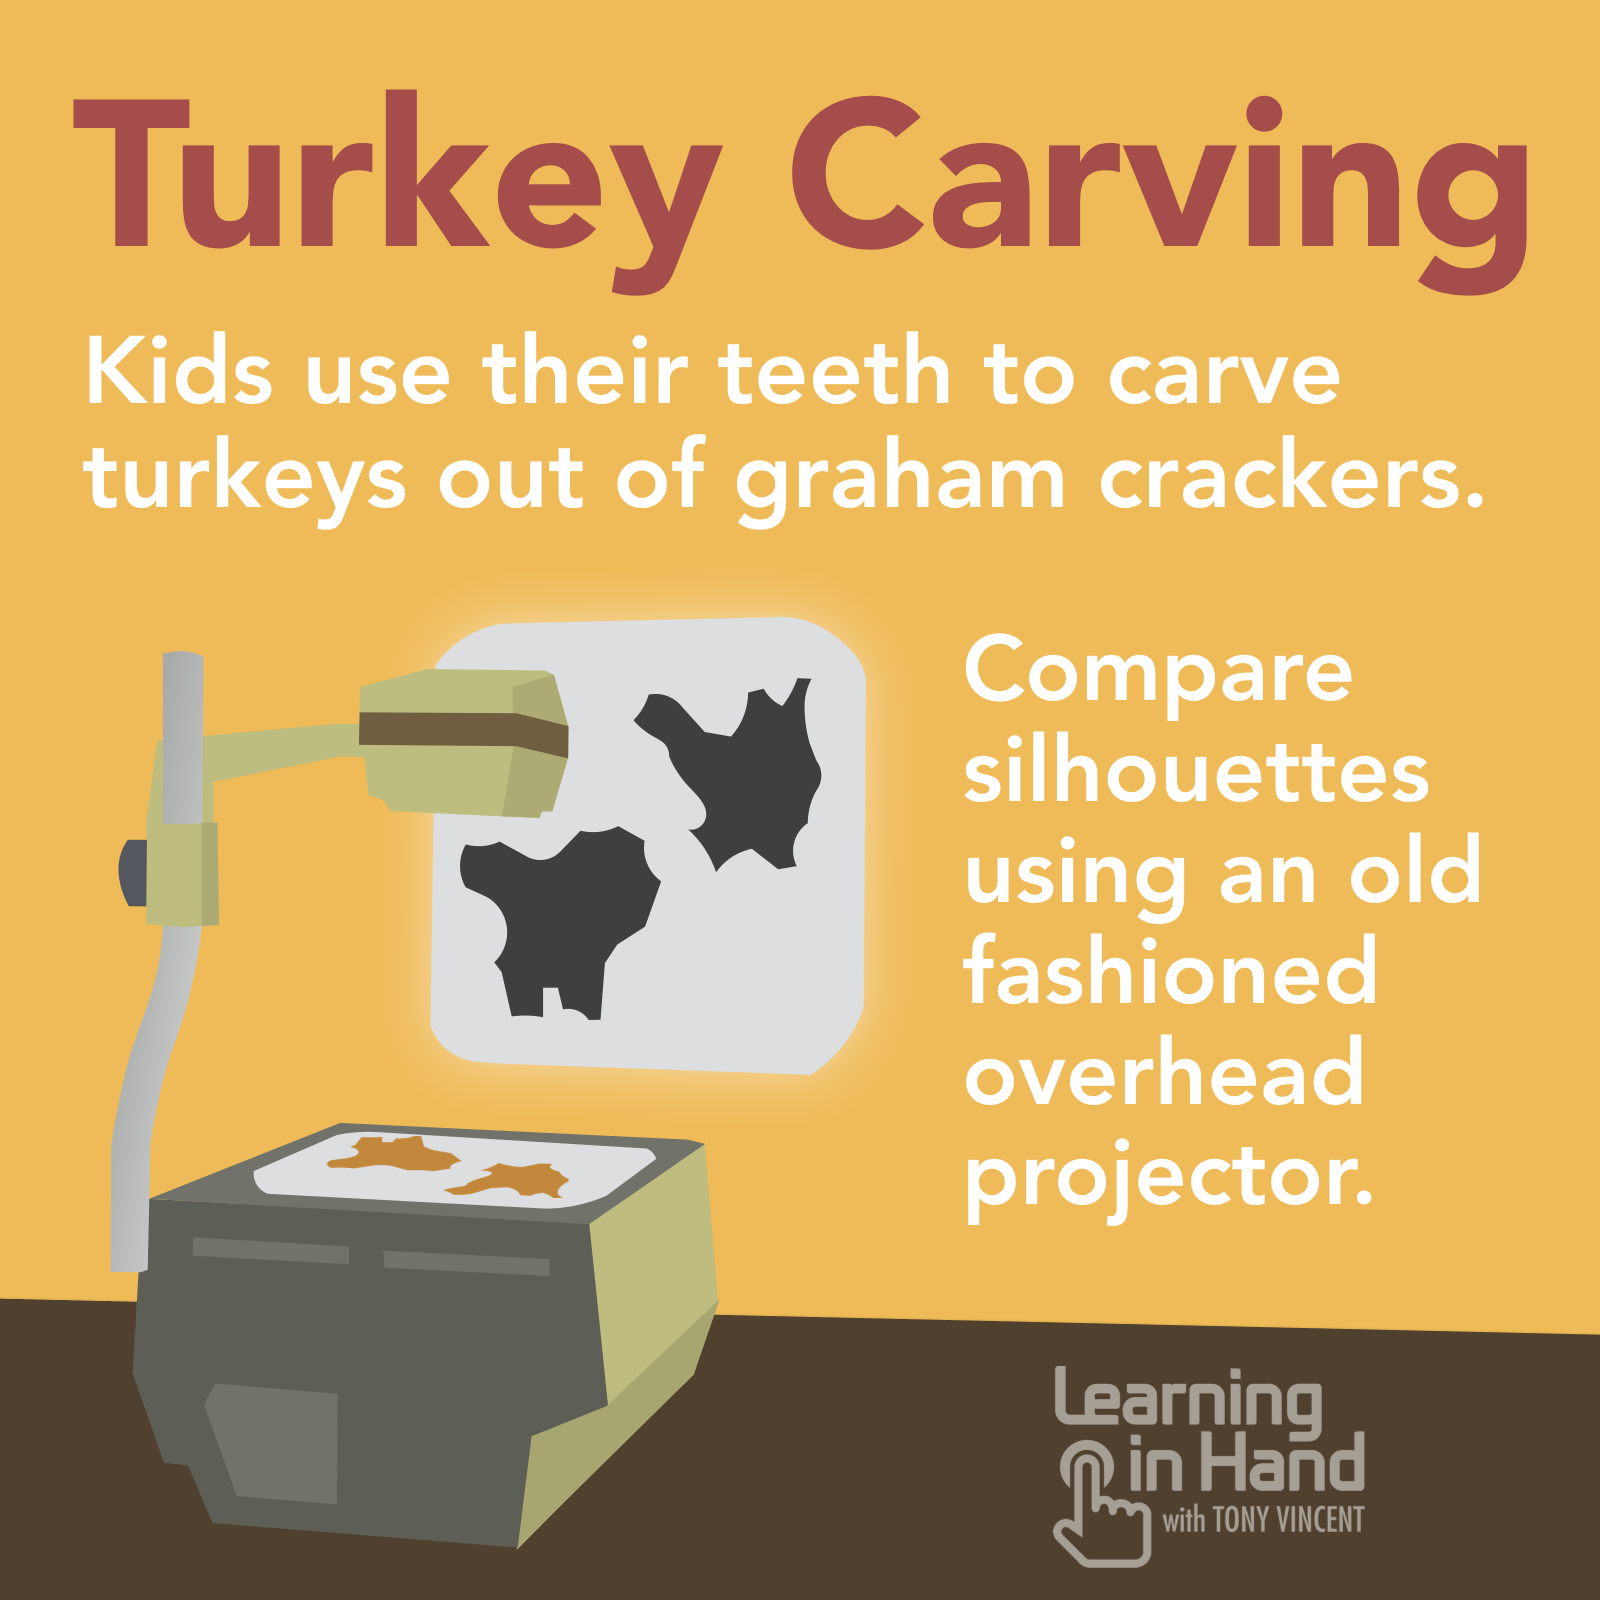 Turkey Carving: Kids use their teeth to carve turkeys out of graham crackers.